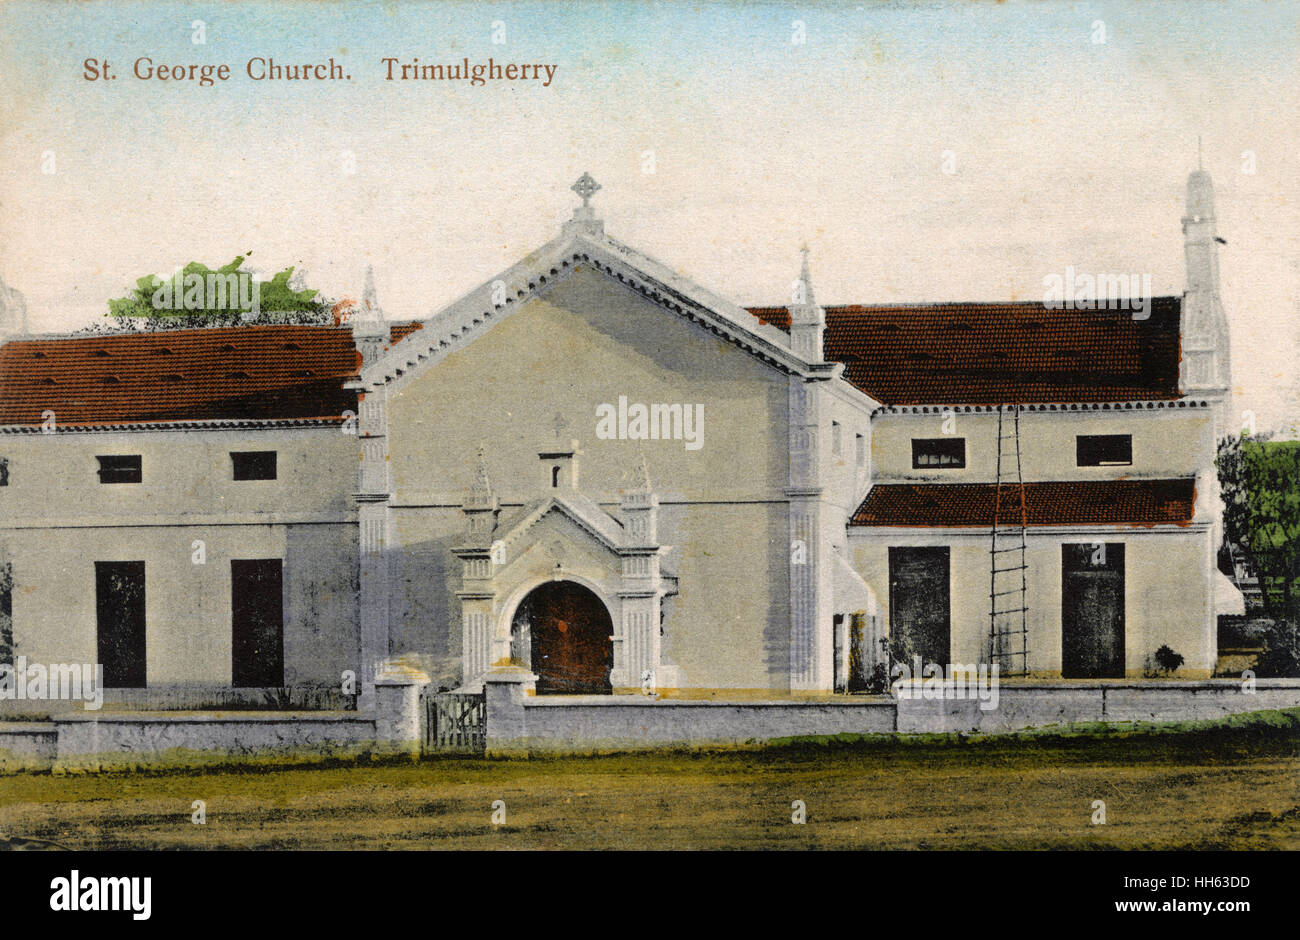 St George's Church, Trimulgherry (Tirumalagiri), suburb of Secunderabad, India. - Stock Image